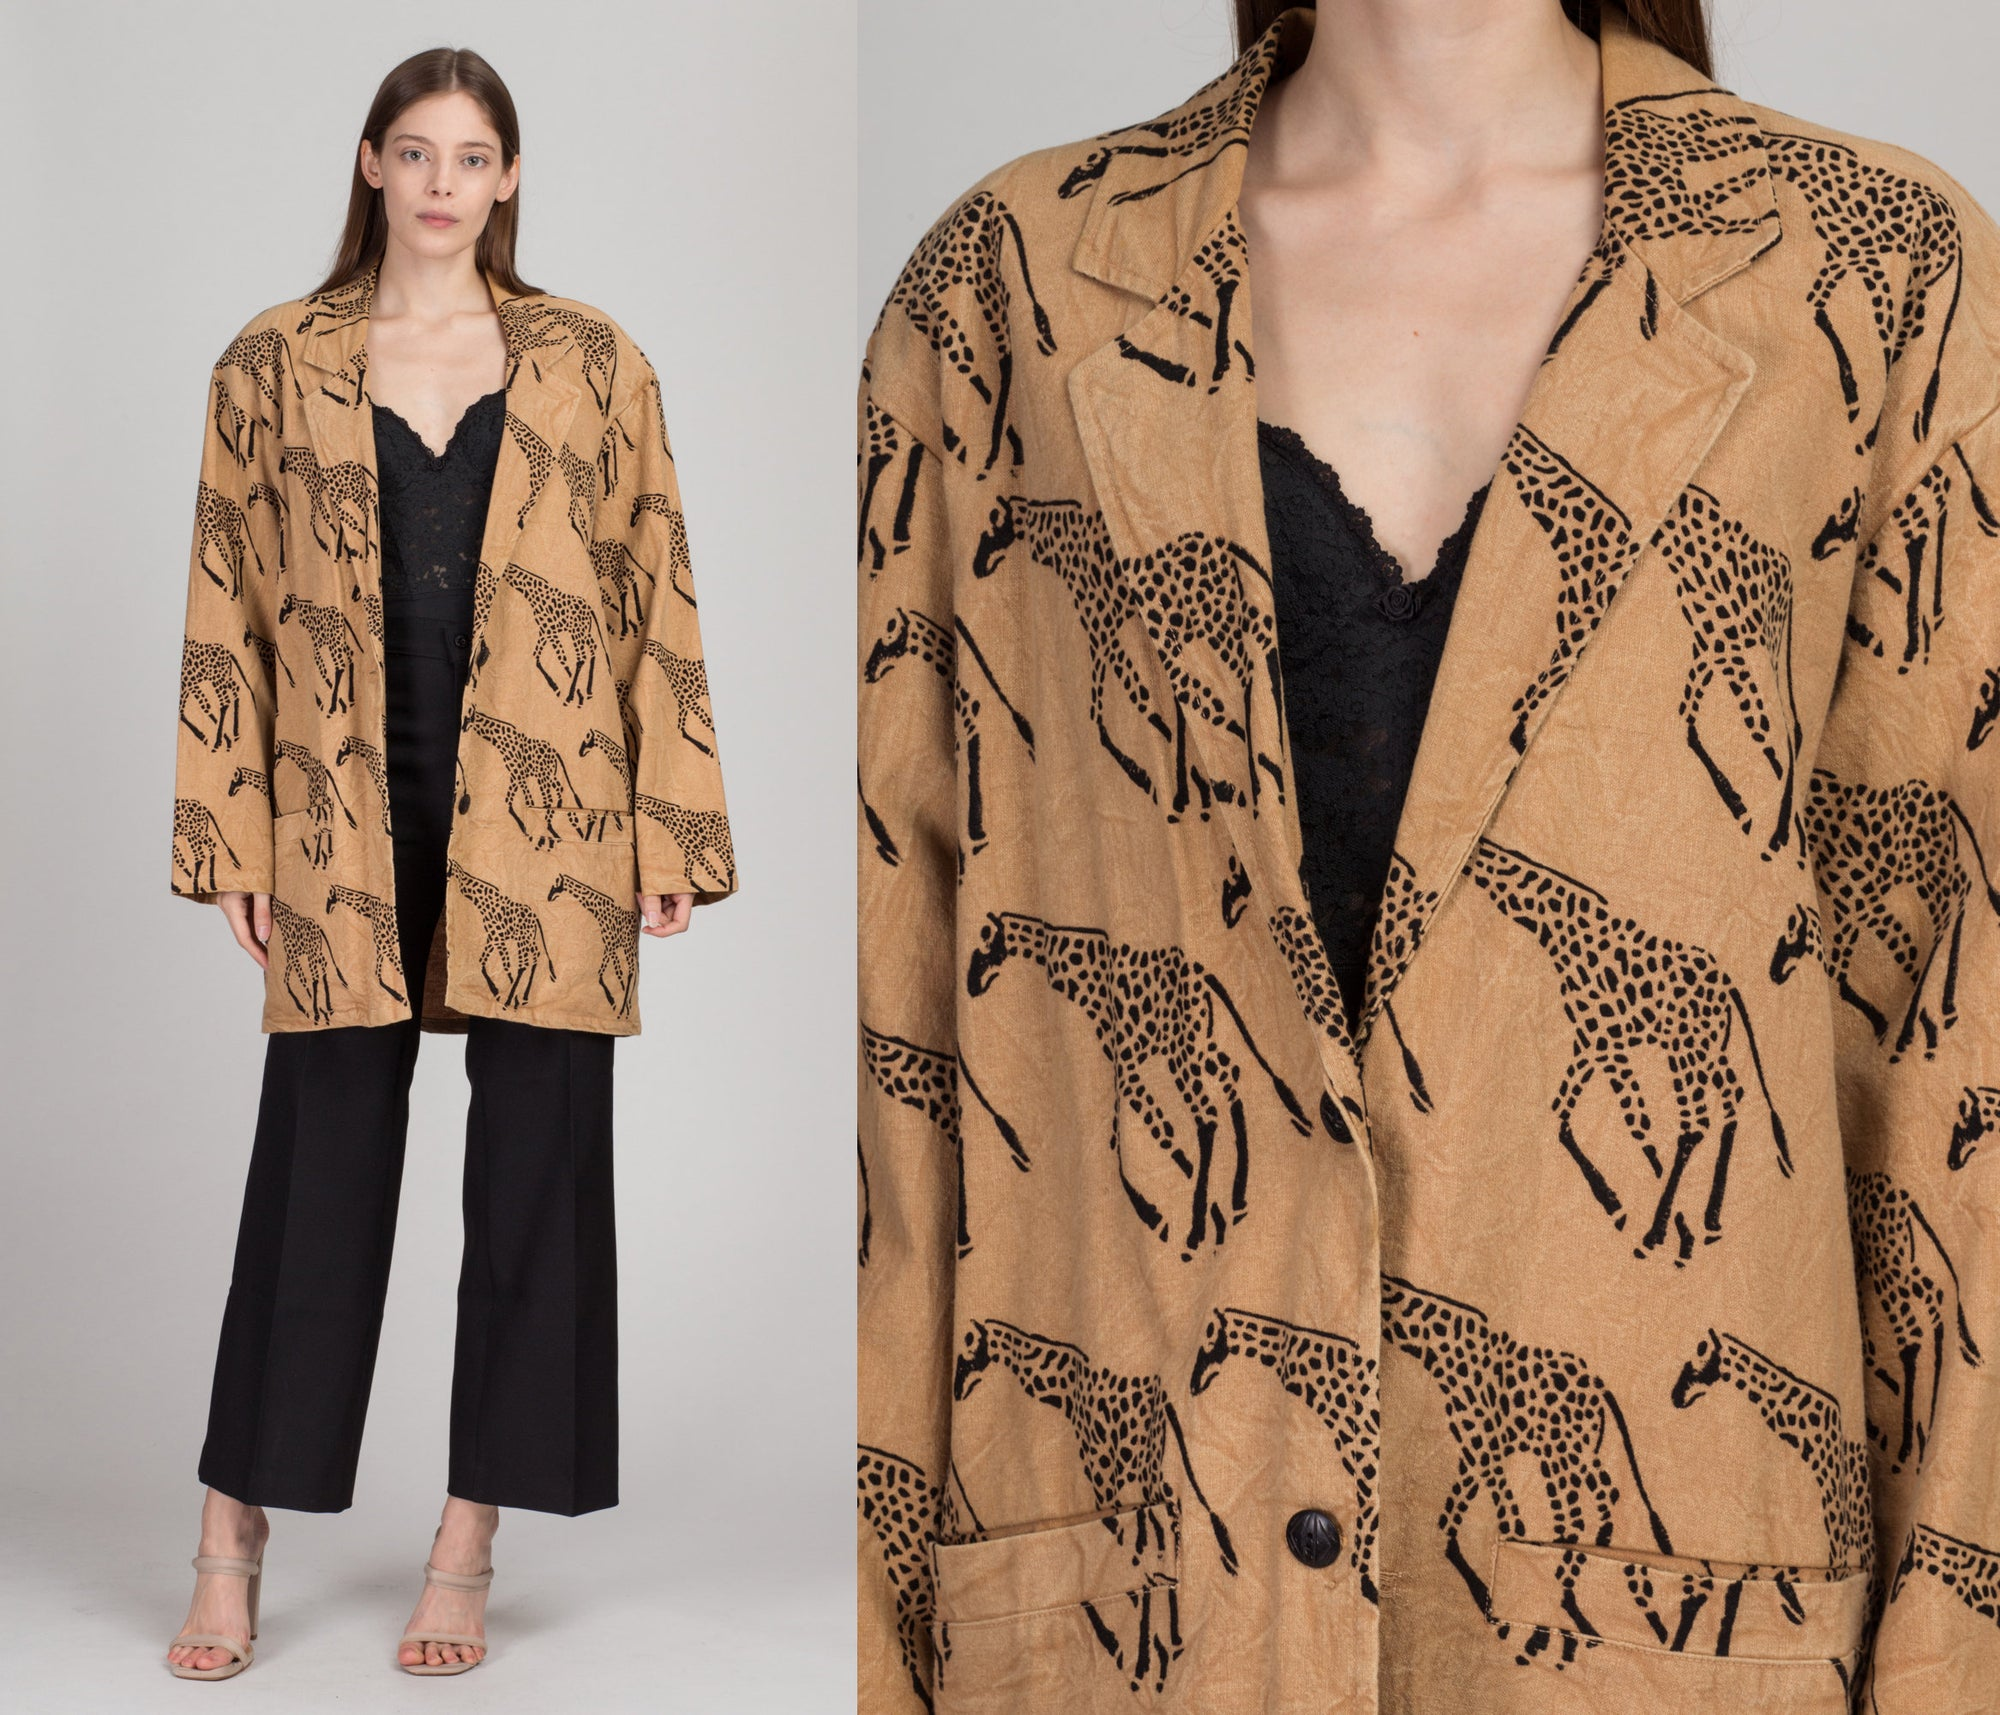 90s Oversize Cotton Giraffe Jacket - Men's Medium, Women's Large | Vintage Made In India Button Up Blazer Coat